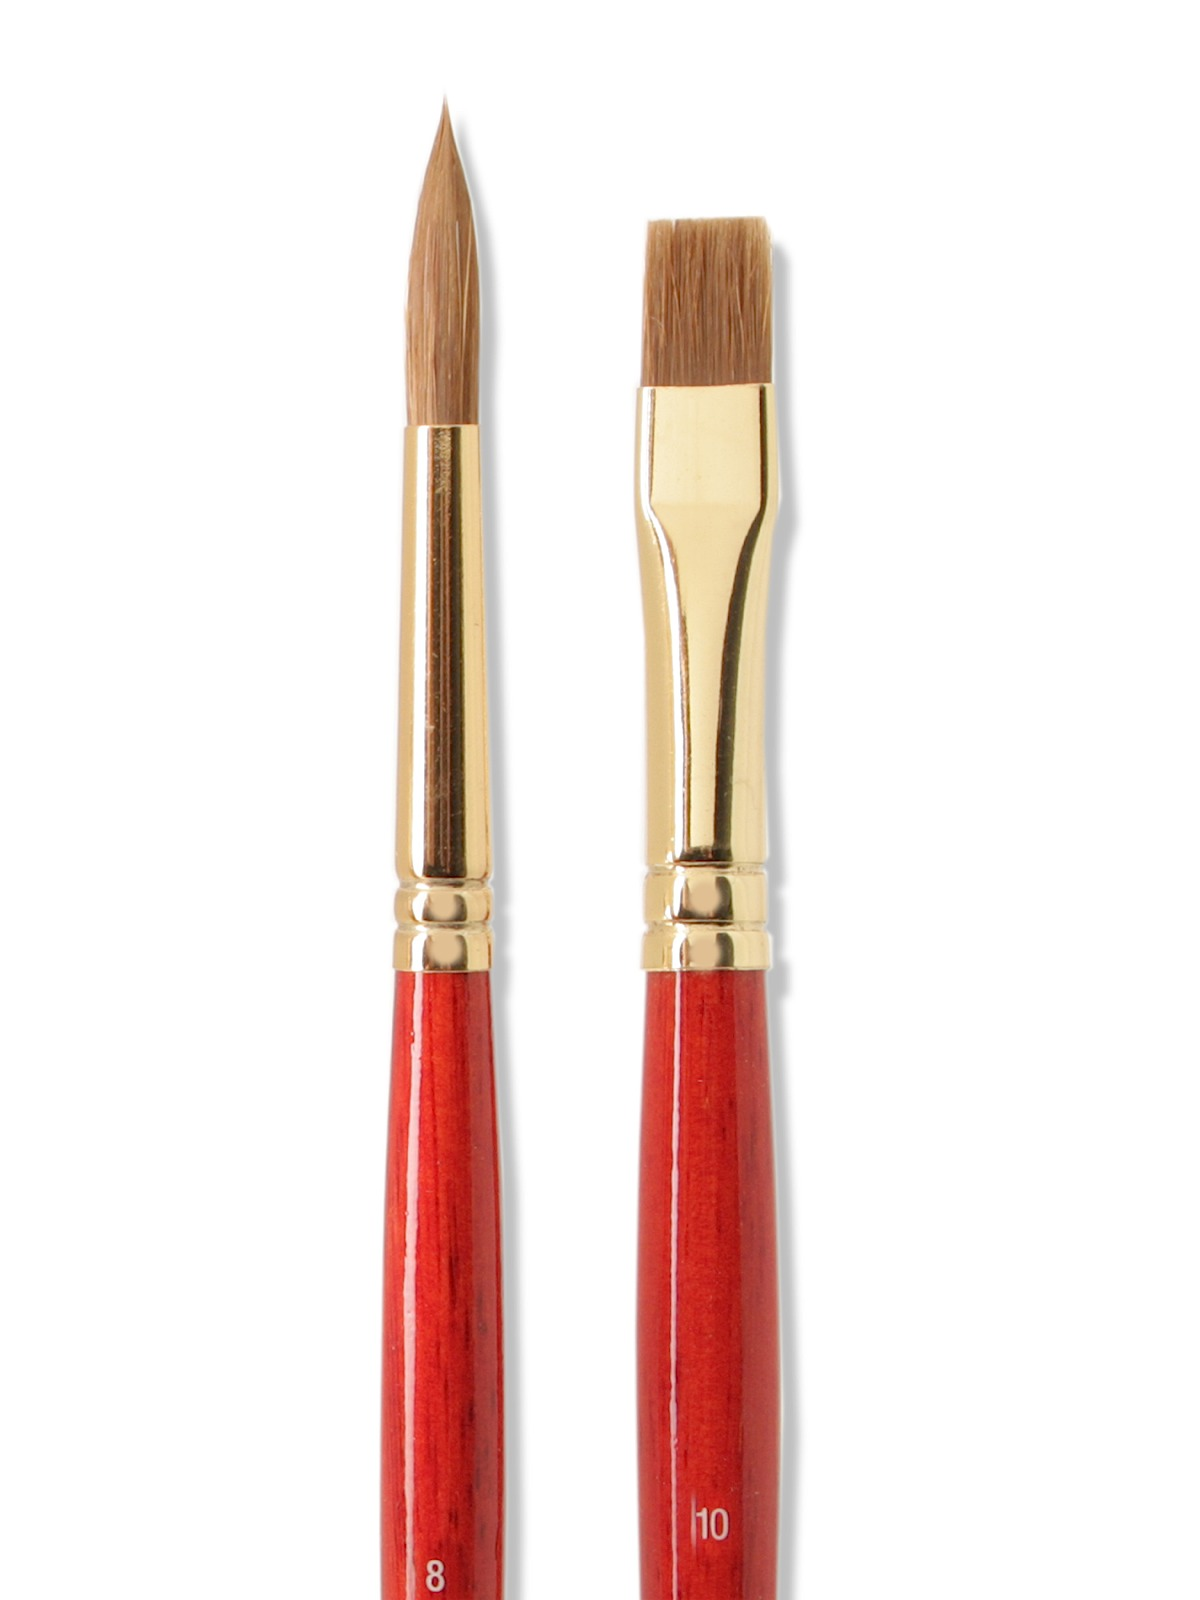 Sceptre Gold II Long Handled Brushes